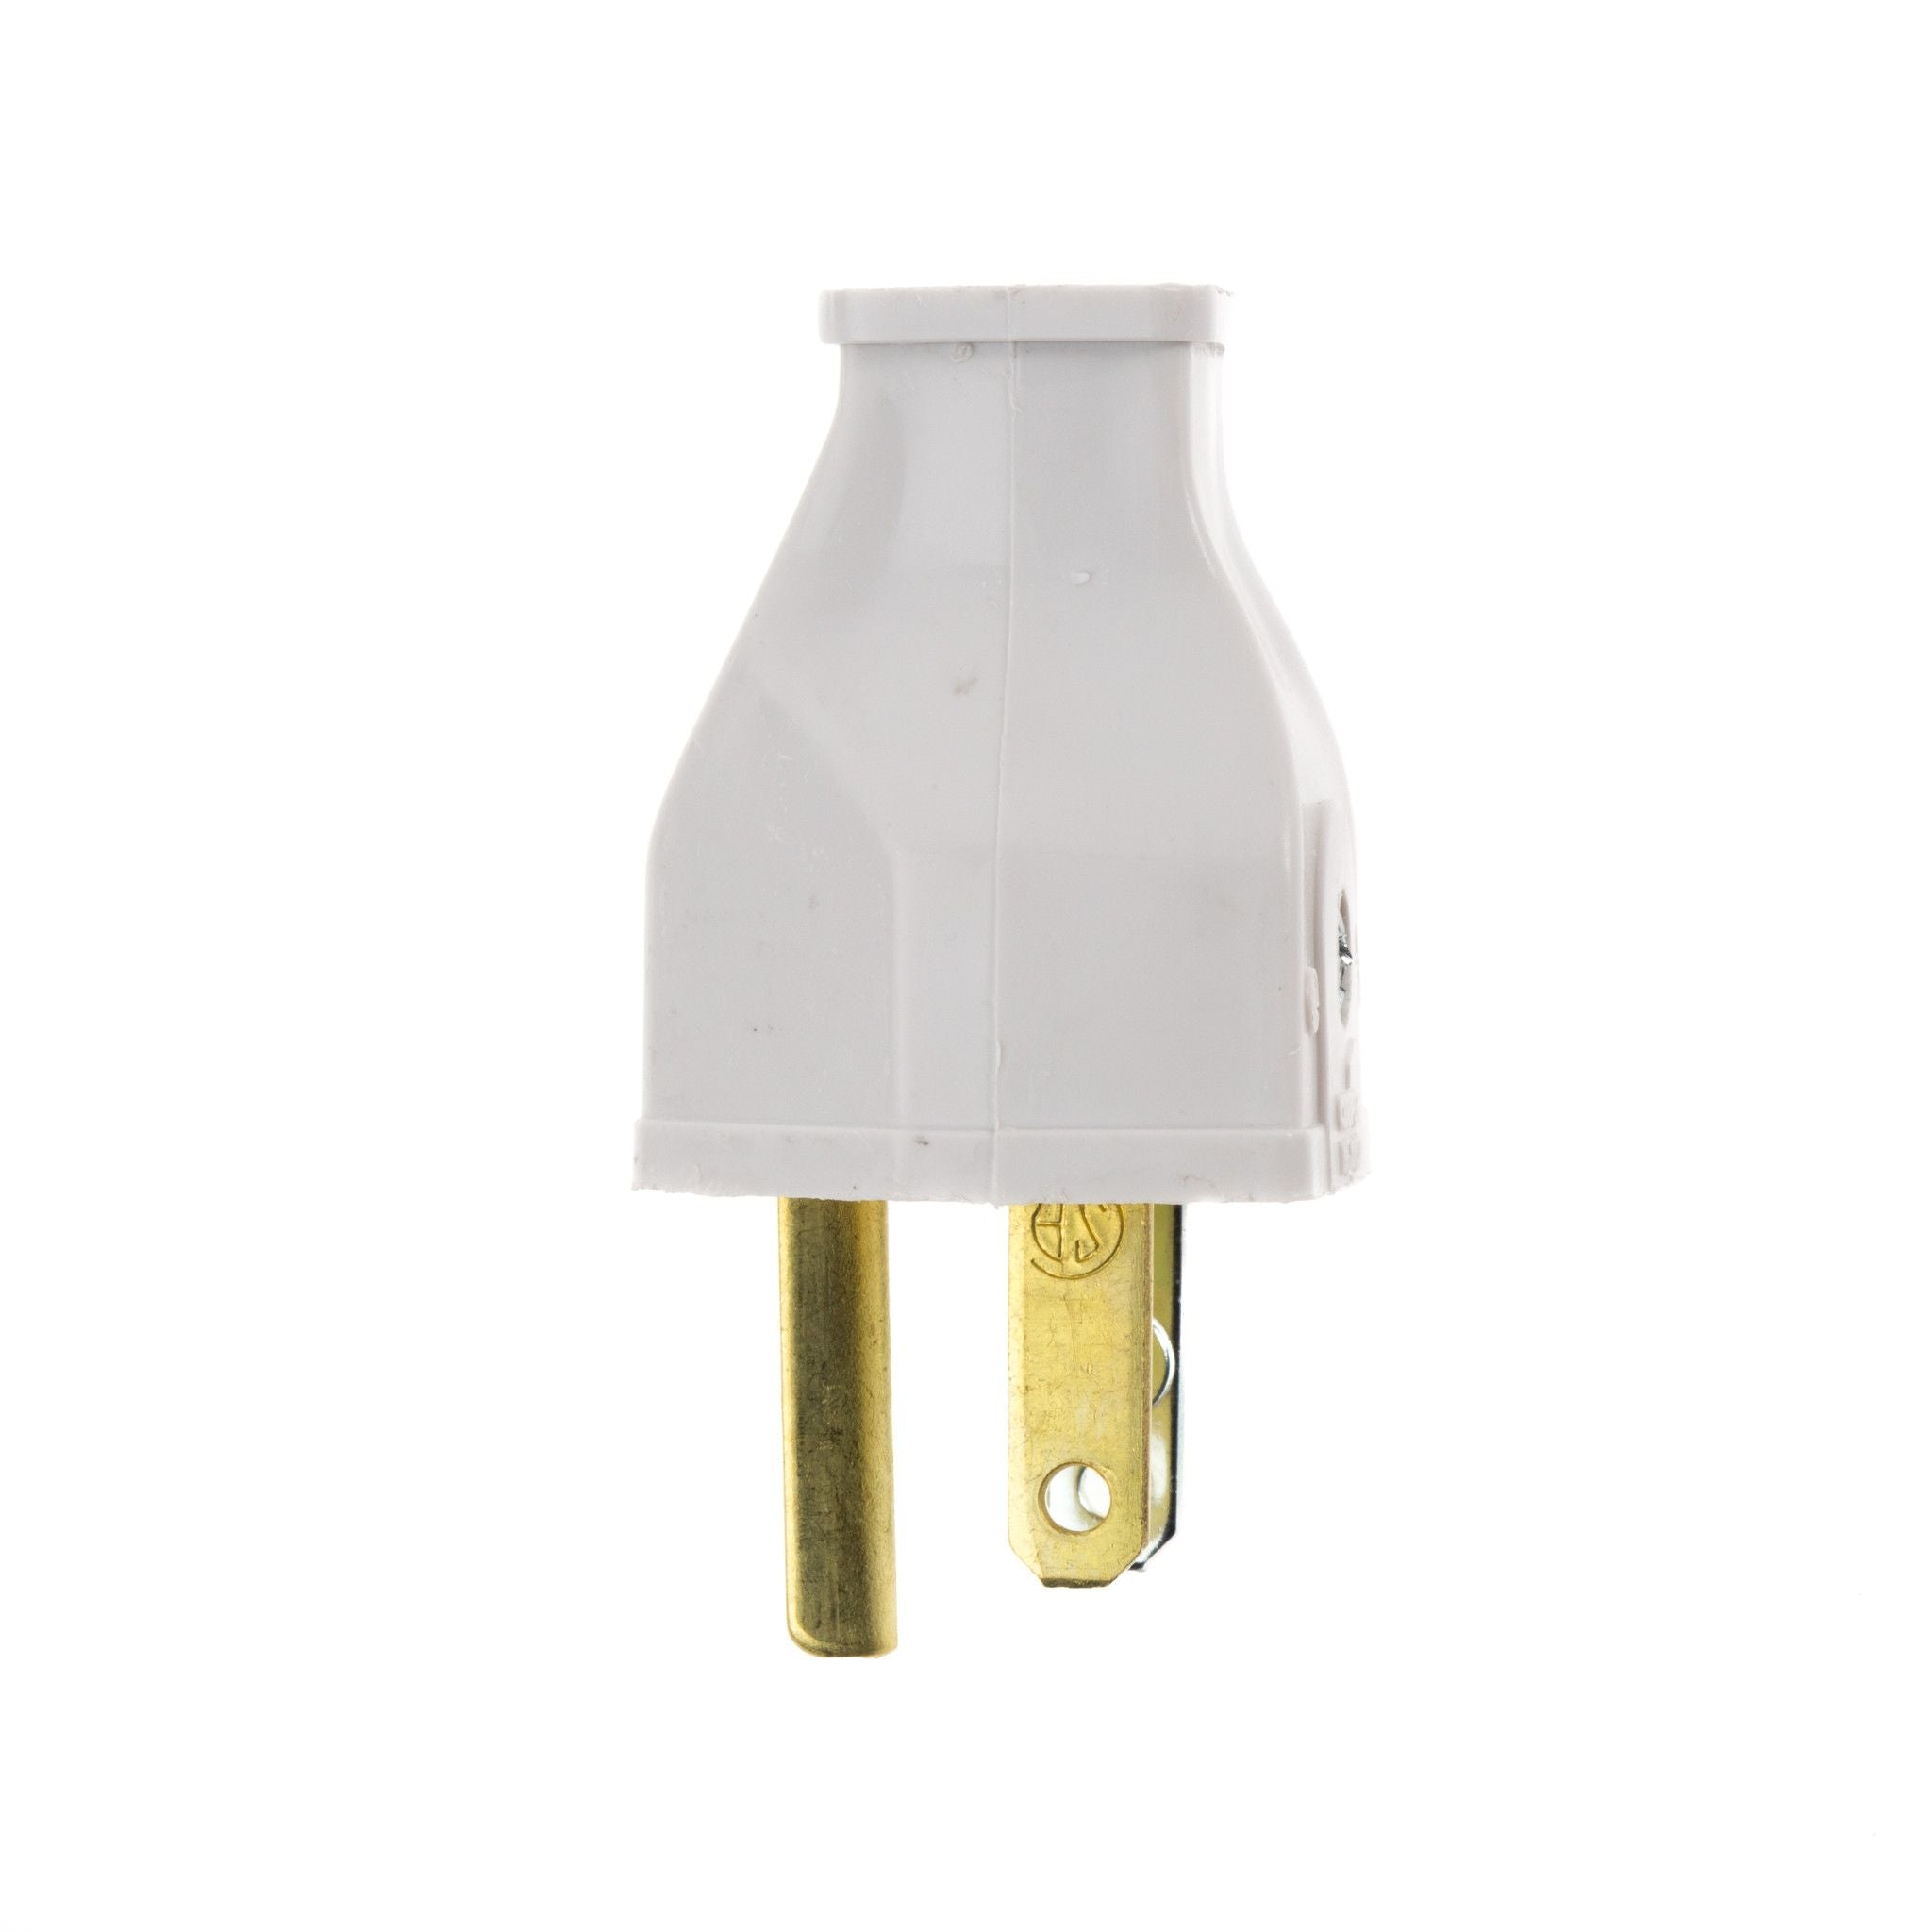 Cord Plug End Light Color Company Lamp Wiring Ends White Removable 3 Prong